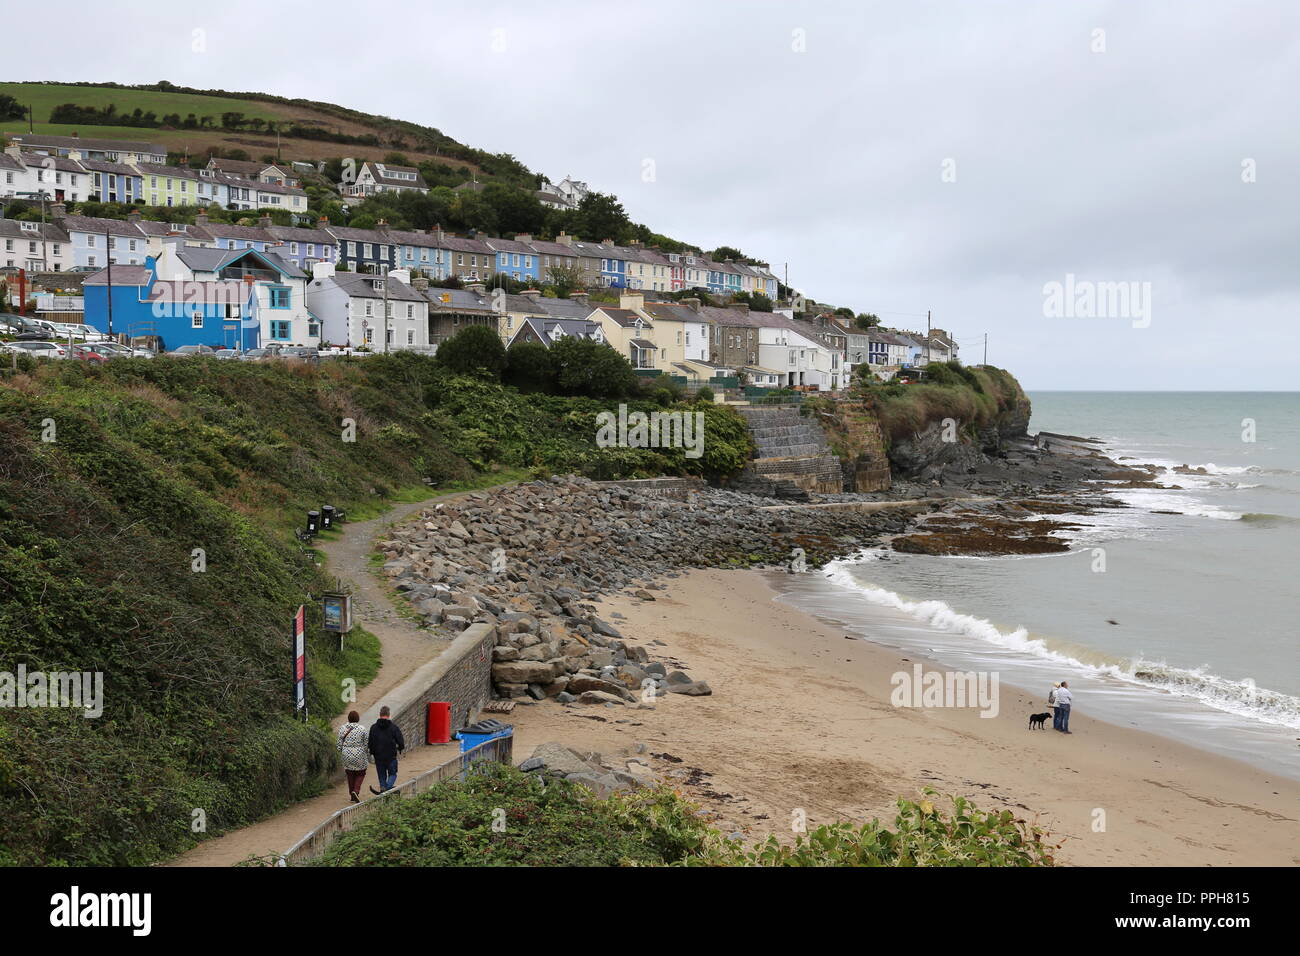 Dolau Beach, New Quay, Cardigan Bay, Ceredigion, Wales, Great Britain, United Kingdom, UK, Europe - Stock Image